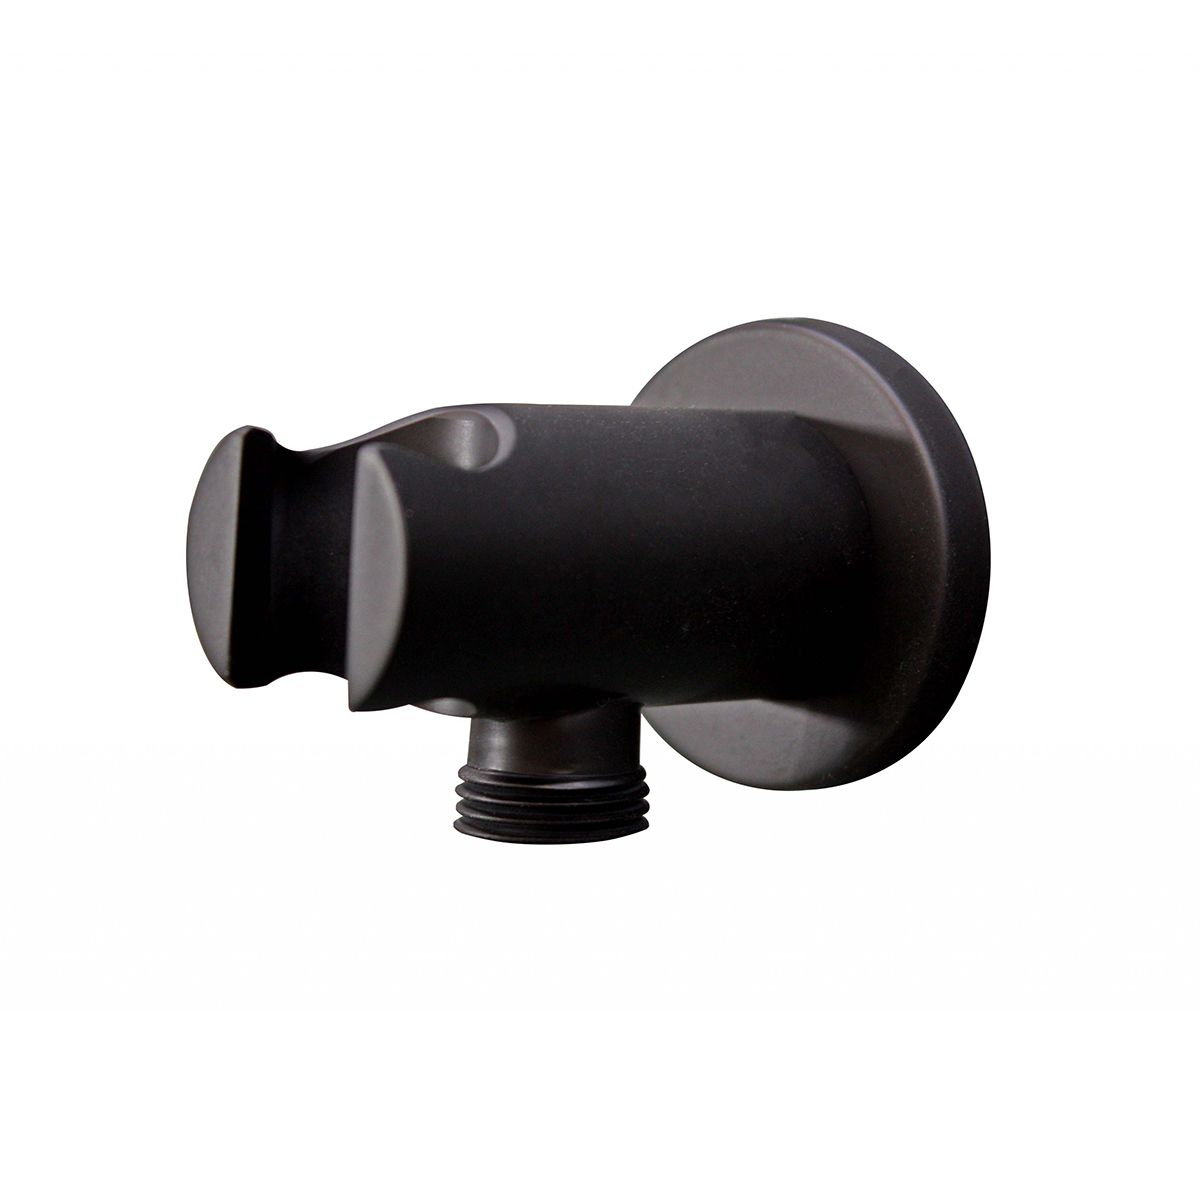 Bathrooms To Love Vema Black Handset Wall Bracket and Outlet